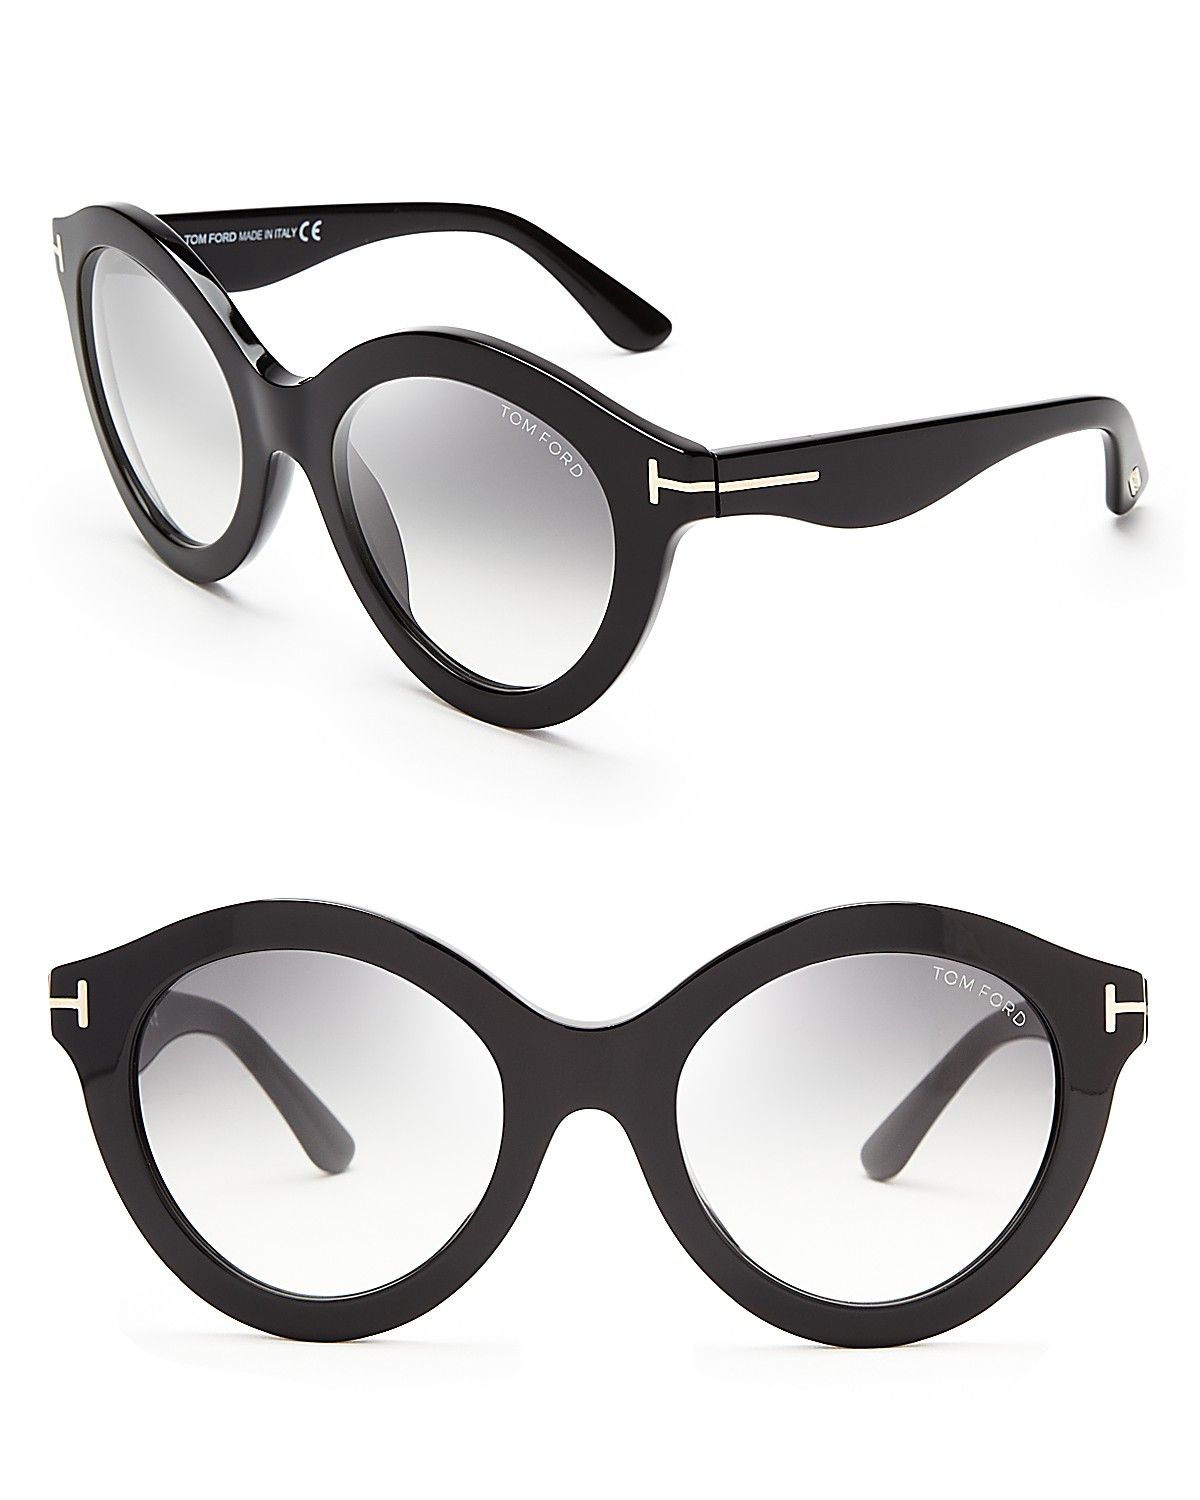 Tom Ford Chiara Round Oversized Sunglasses Bloomingdale